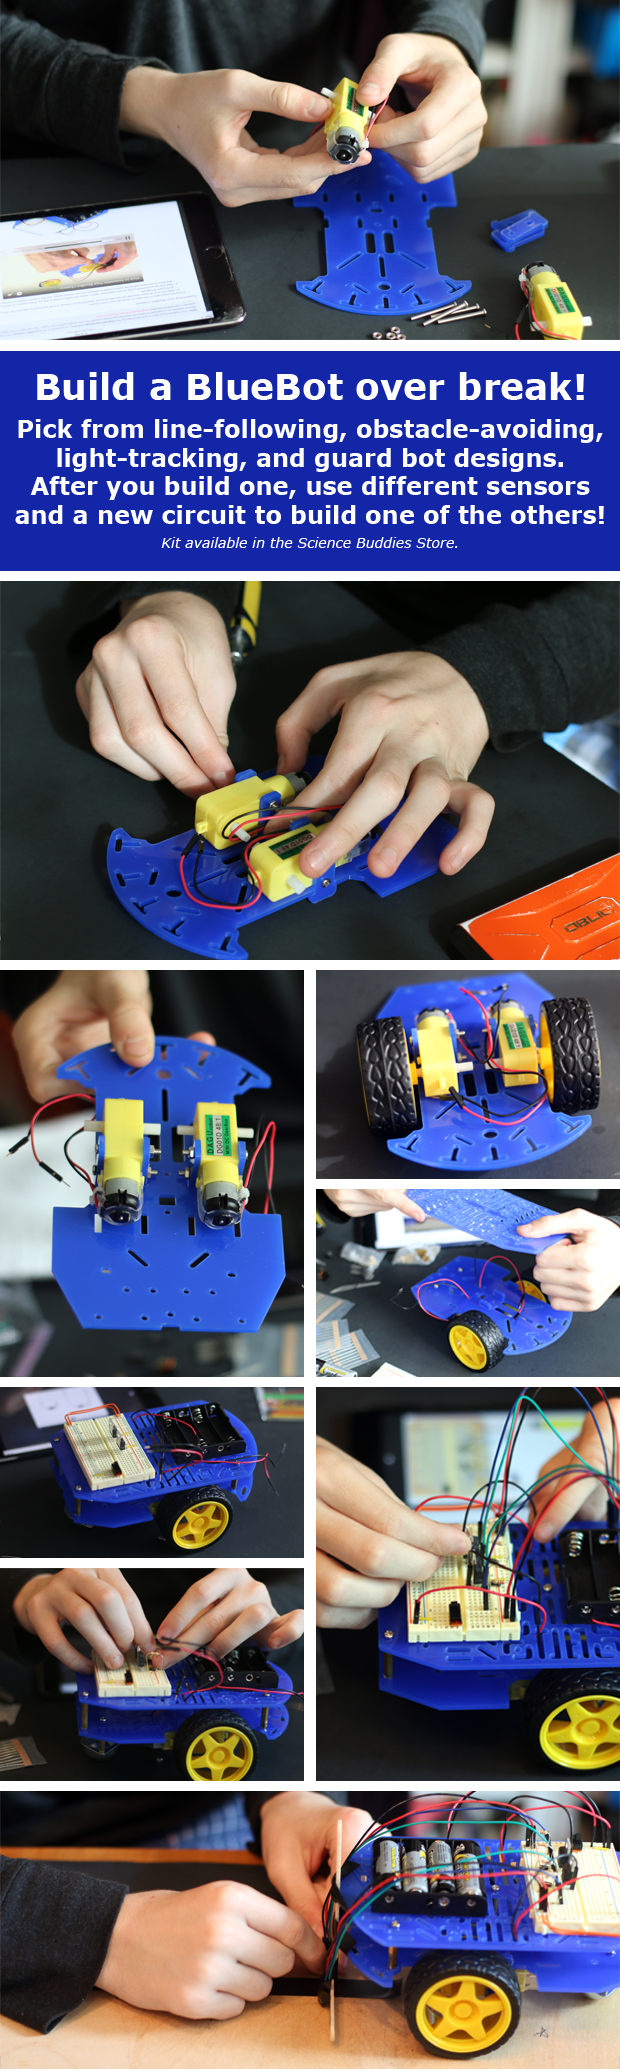 Build a BlueBot Over Break with the BlueBot: 4-in-1 Robotics Kit from the Science Buddies Store